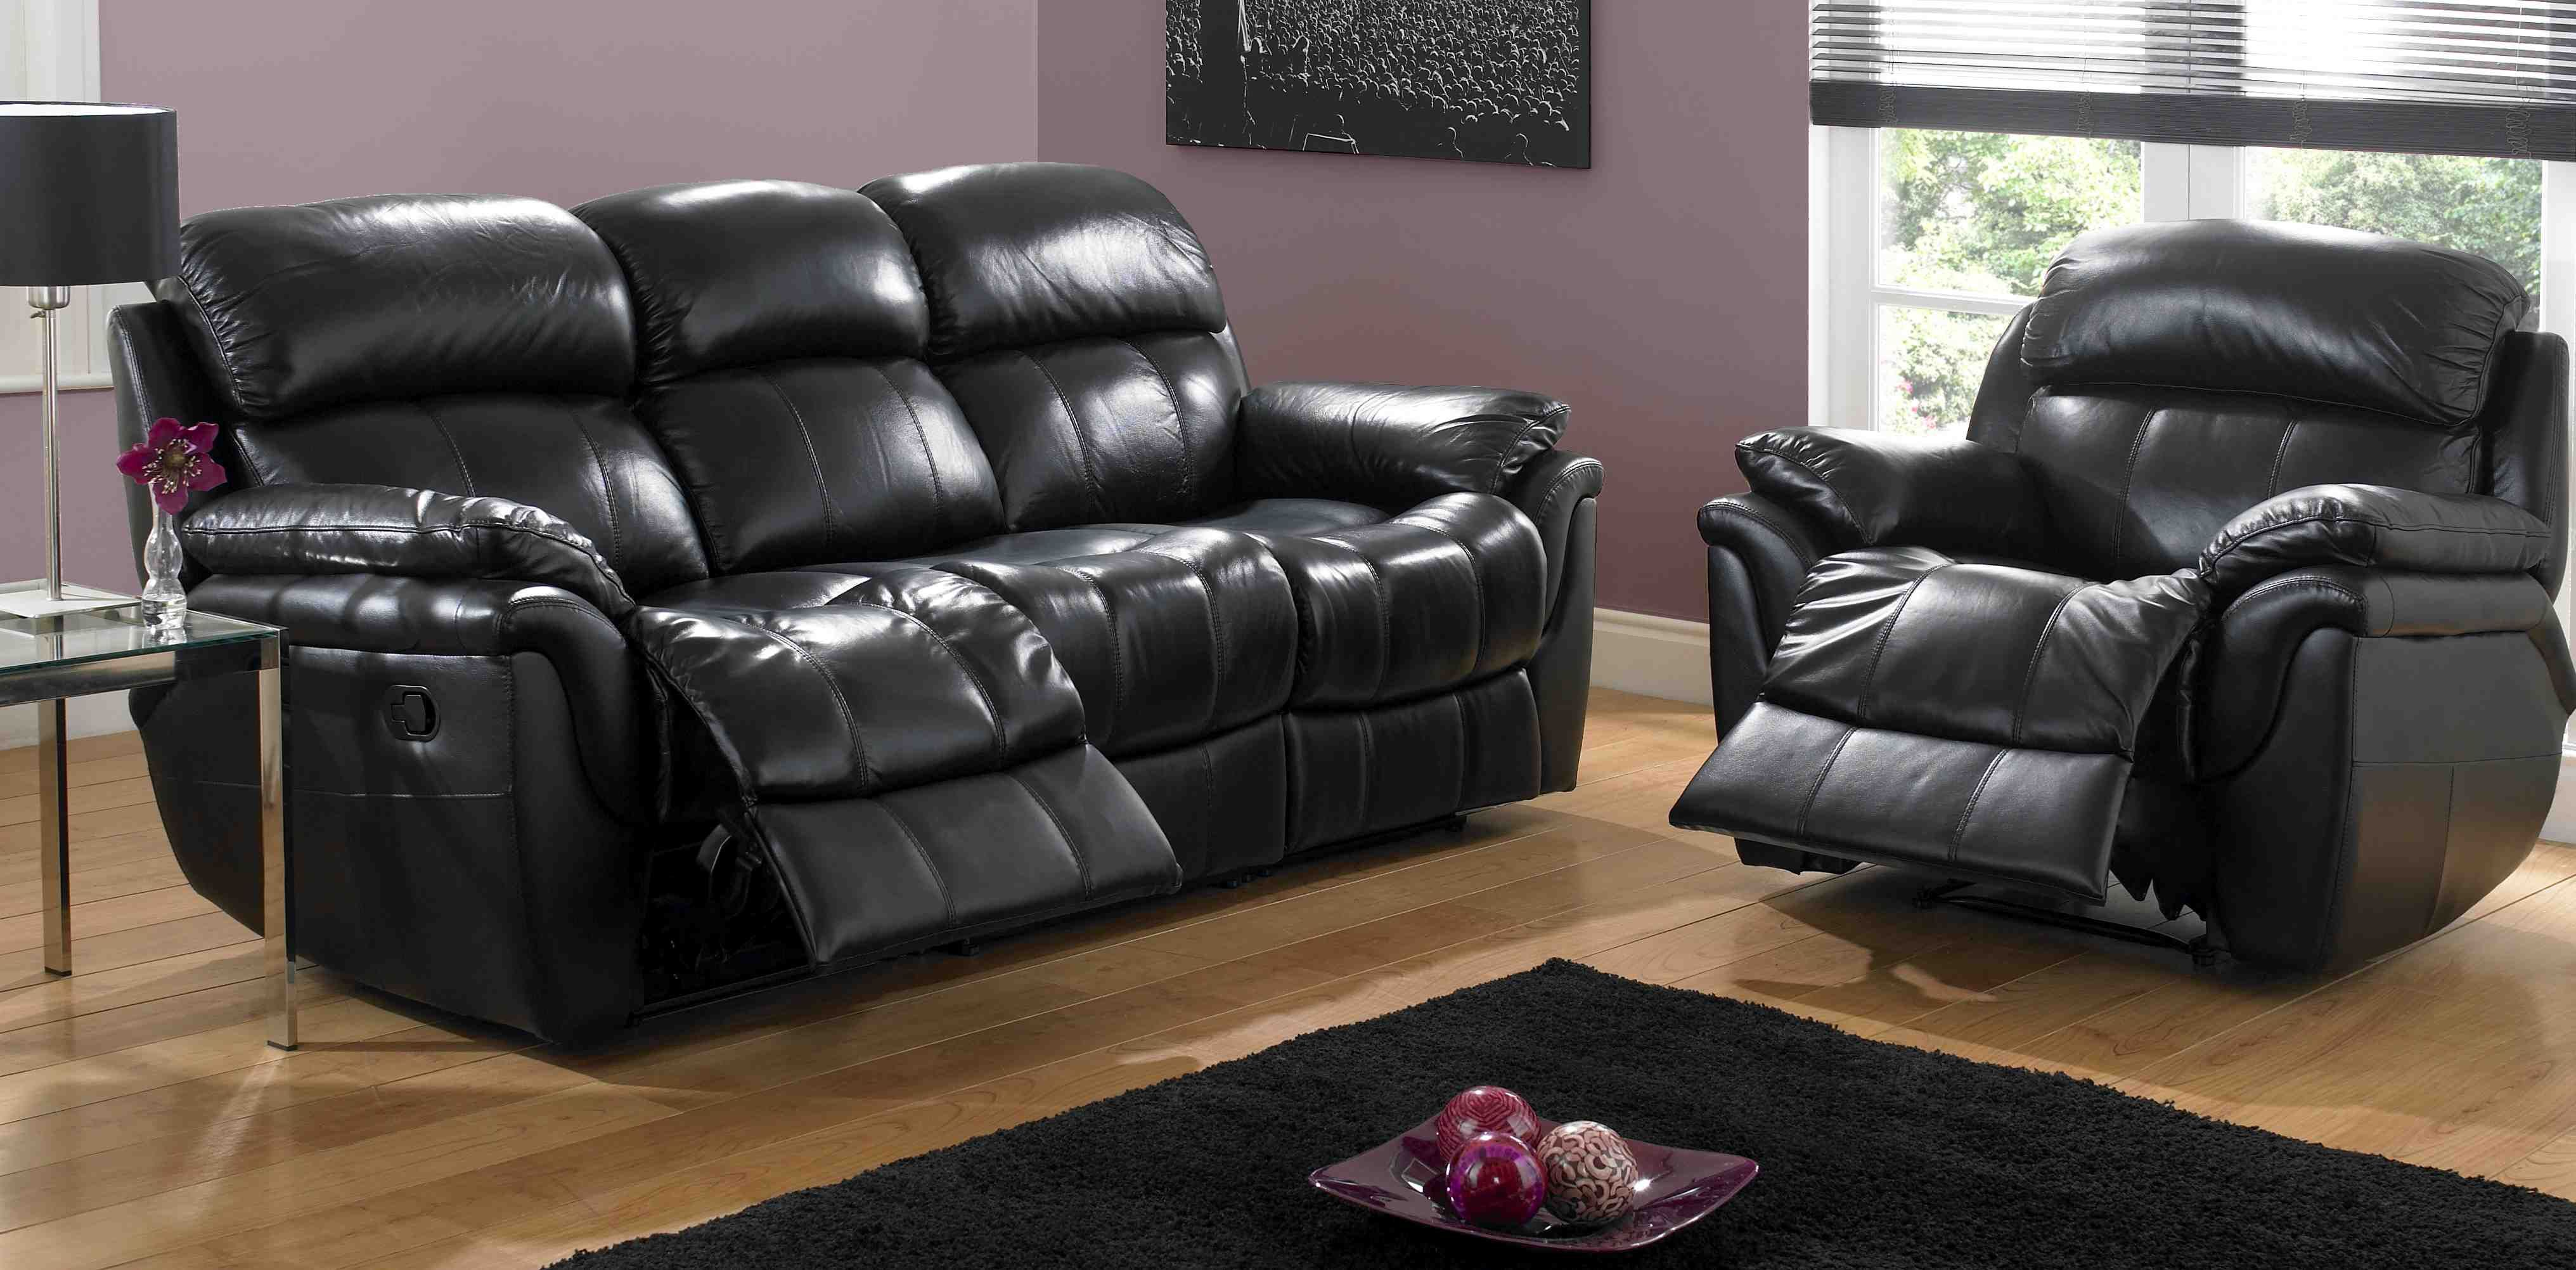 Leather Sofa Recliners Leather Reclining Sofa Leather Couches For Sale Sofa